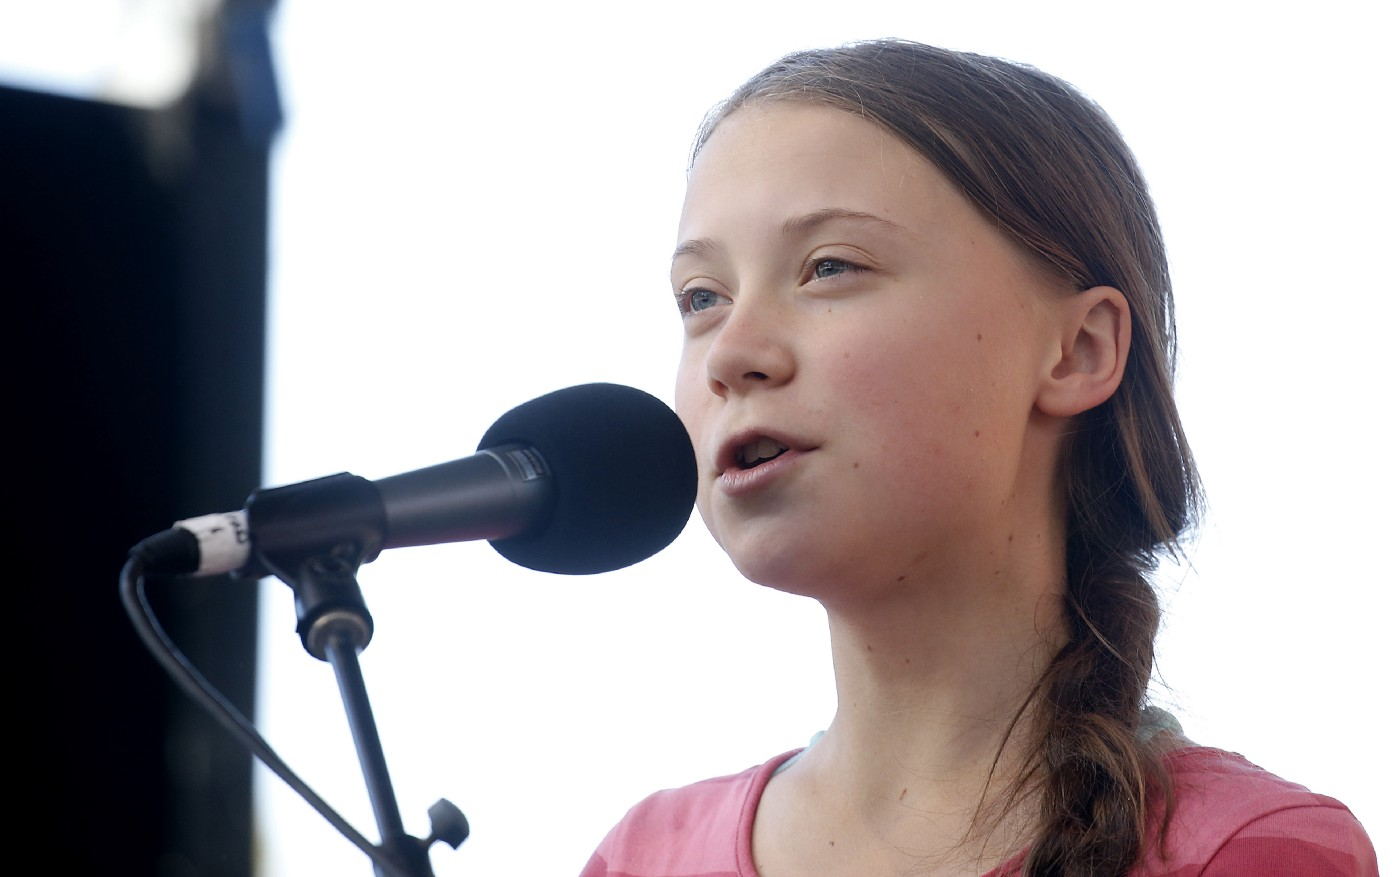 Activist Greta Thunberg speaking into a microphone as she leads the Youth Climate Strike.